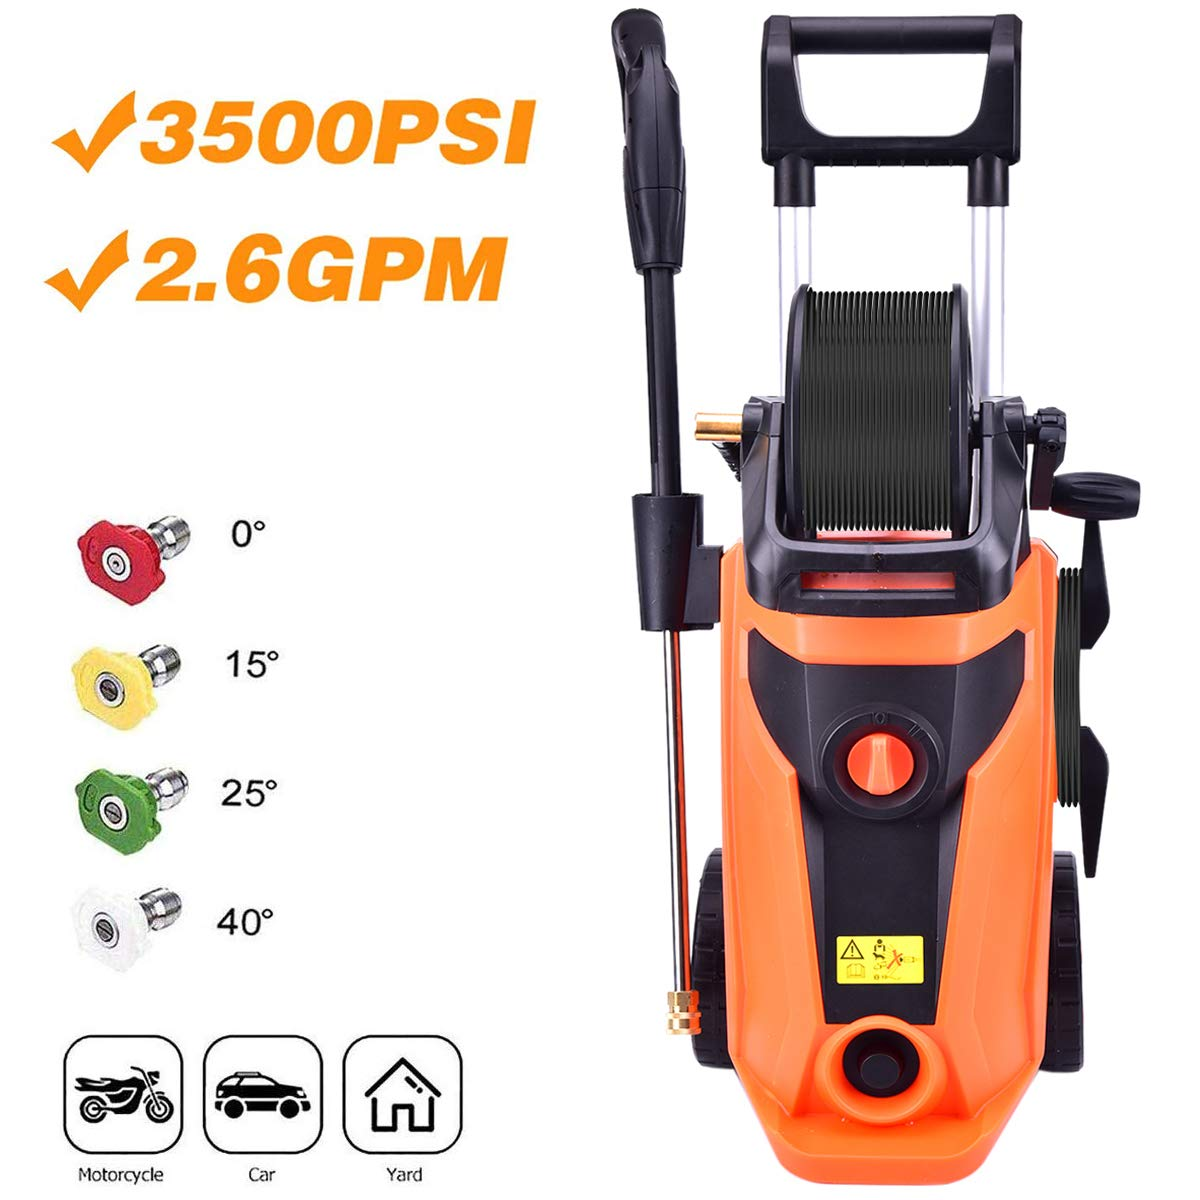 YiiYYaa 3500PSI Electric High Pressure Washer, 2.6GPM 1800W Power Washer, Professional Wash Cleaner Machine with with Hose Reel and 4 Interchangeable Nozzles